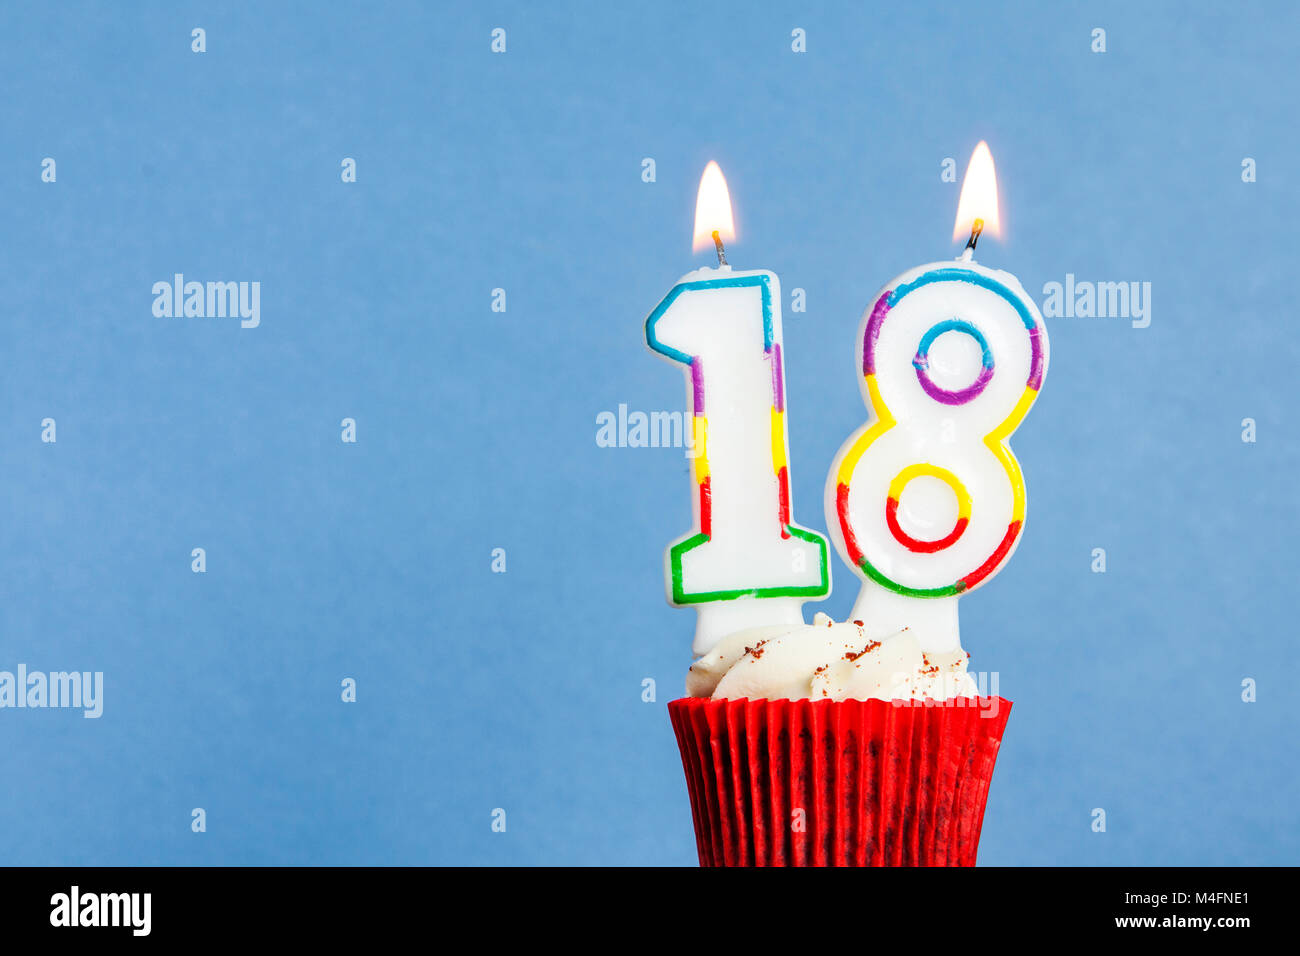 Number 18 Birthday Candle In A Cupcake Against Blue Background